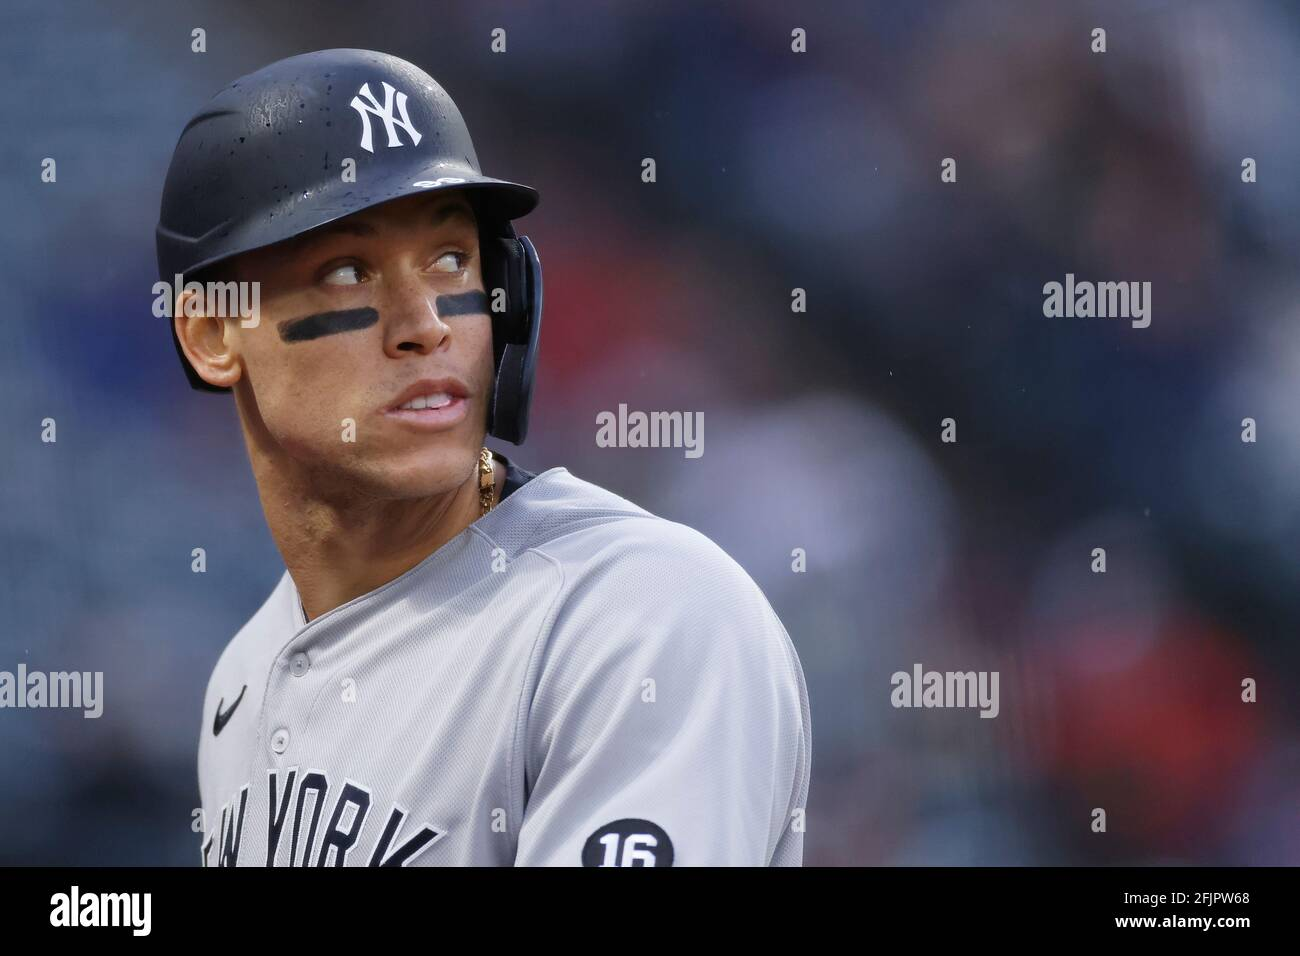 Aaron Judge High Resolution Stock Photography and Images - Alamy